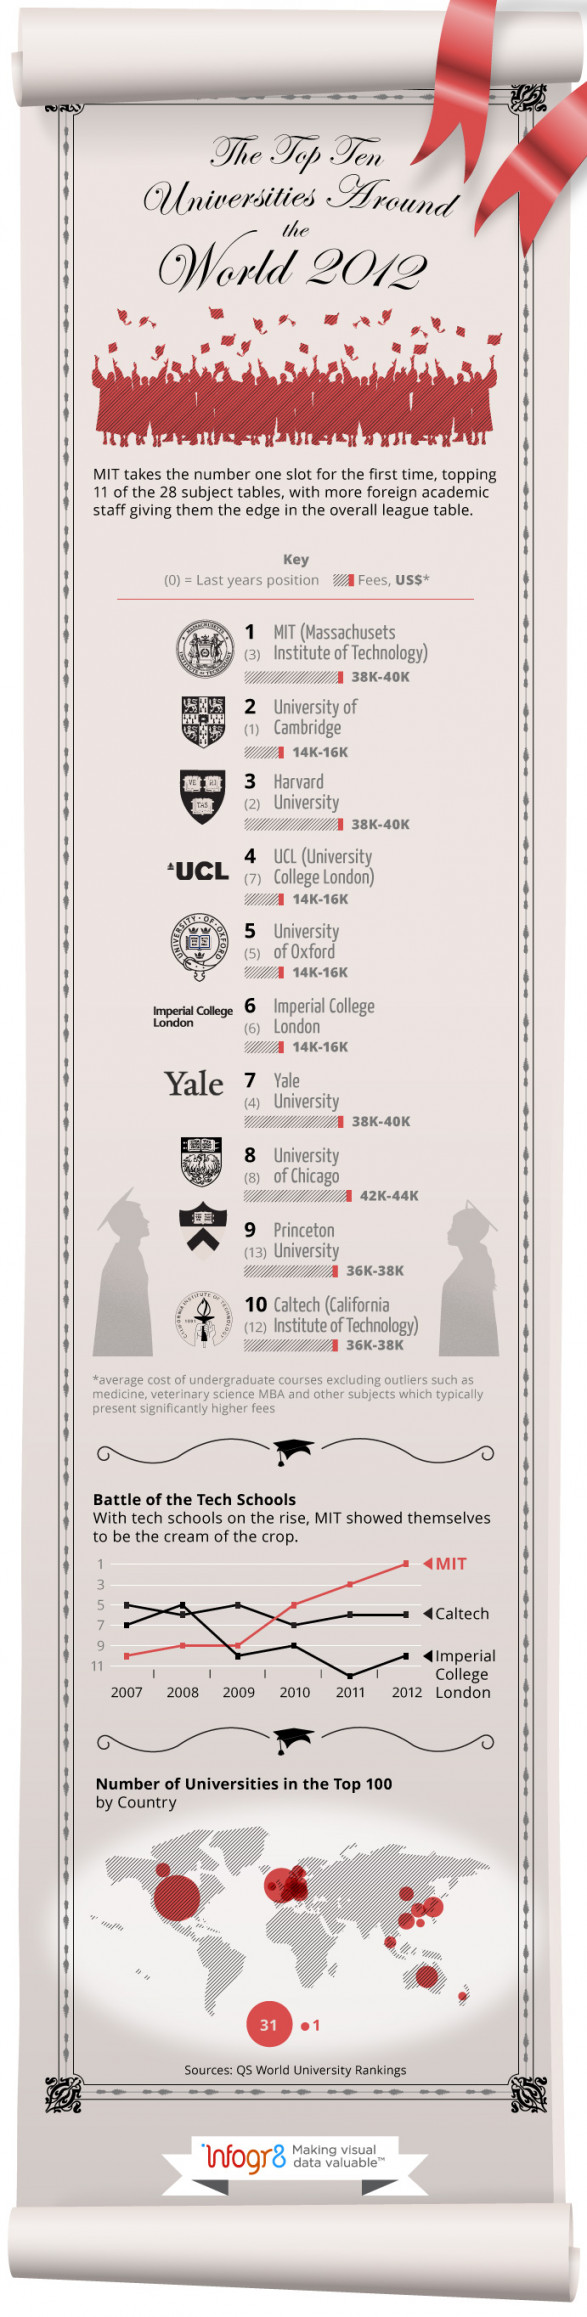 The top 10 universities around the world 2012